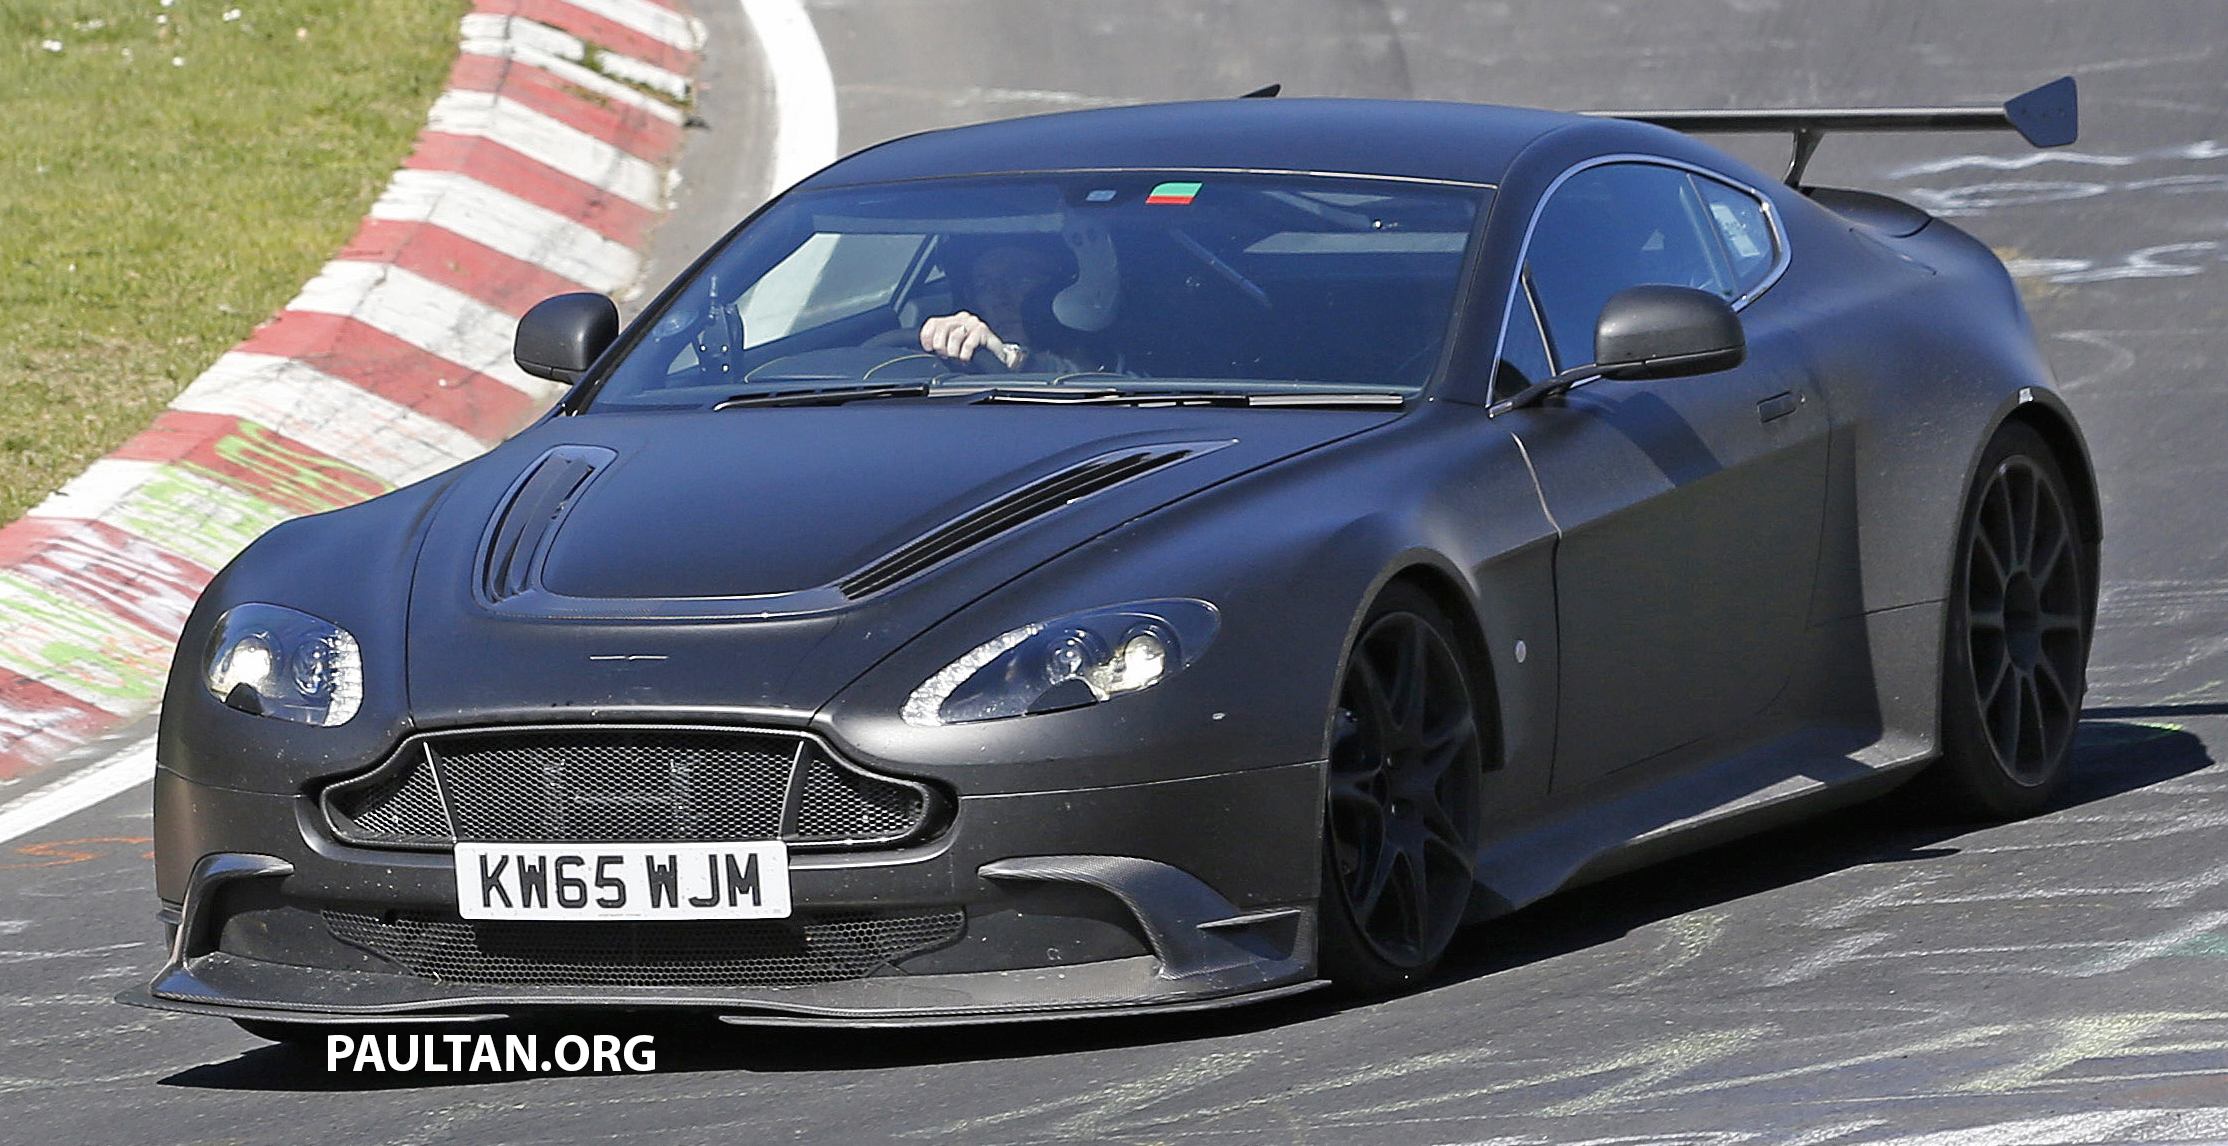 spied: aston martin vantage gt8 testing on track